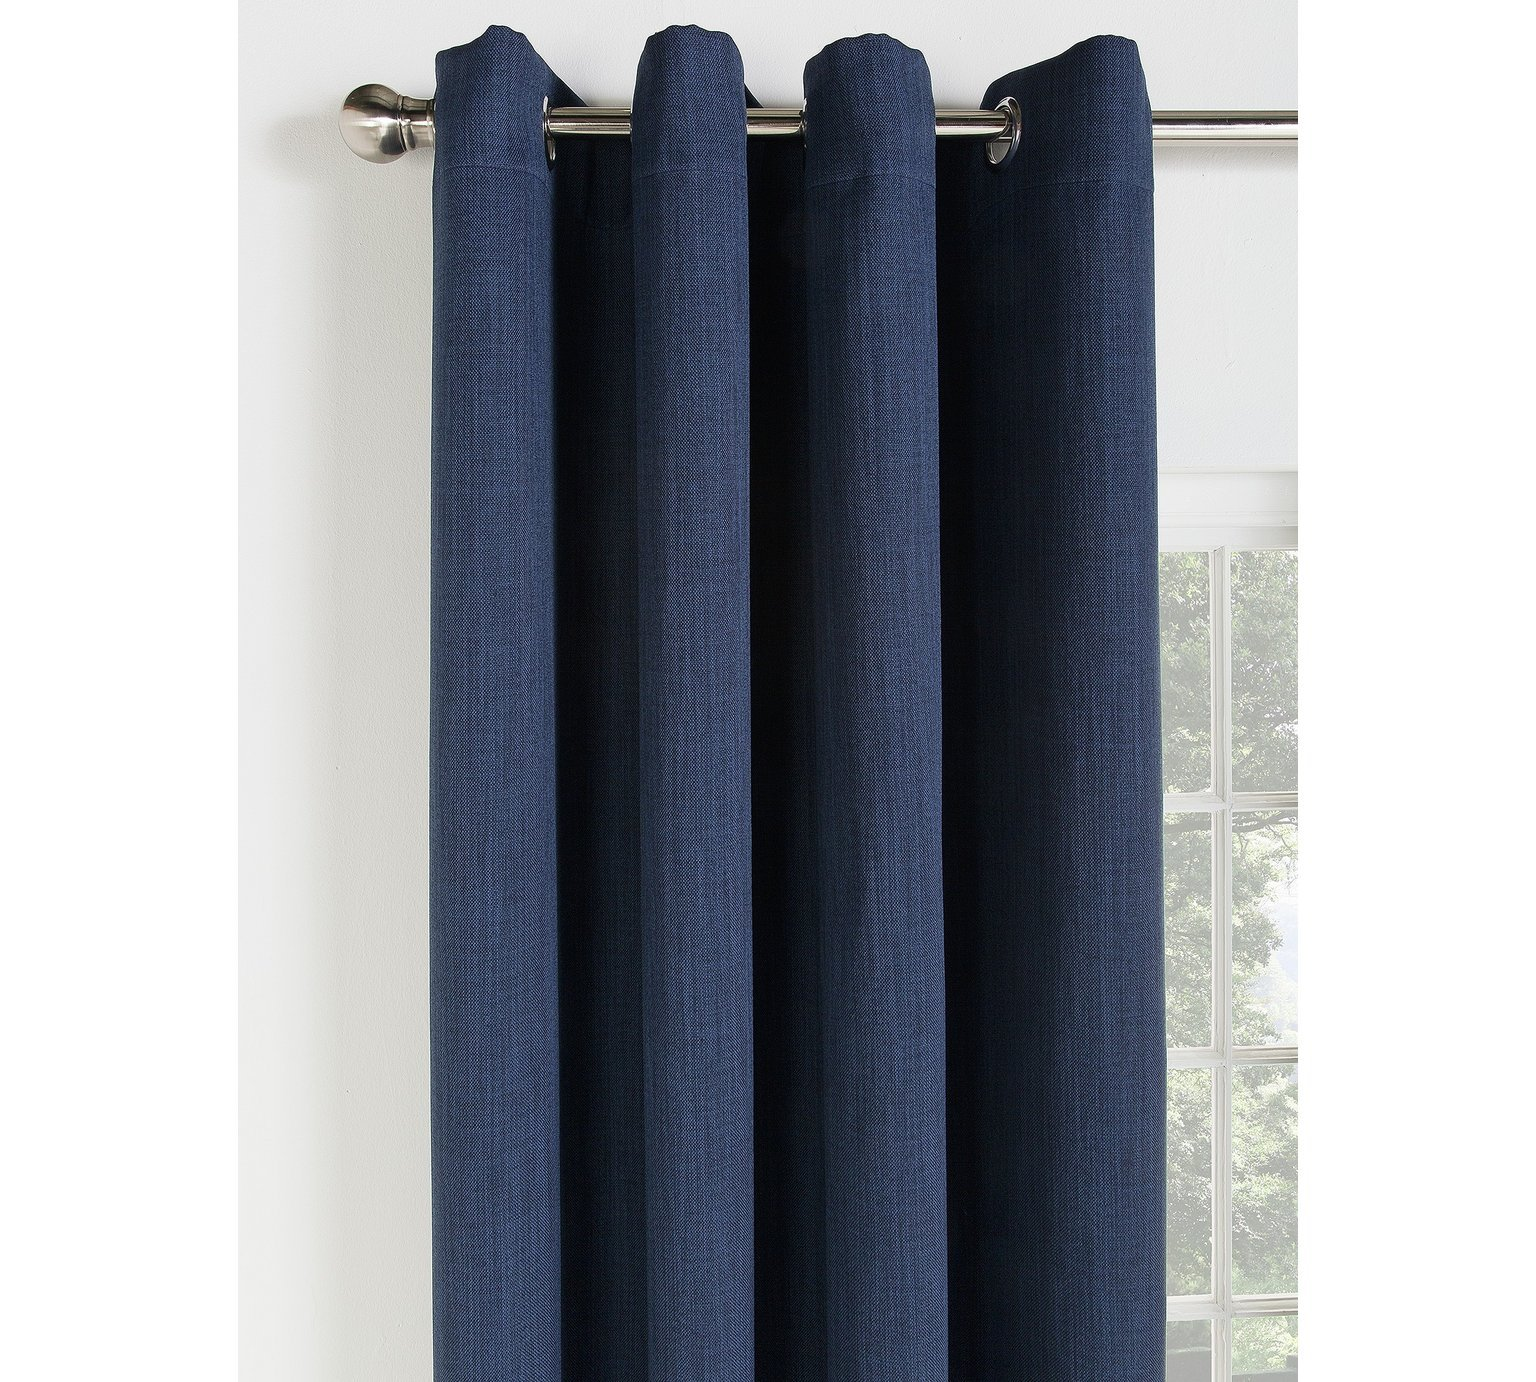 Collection Linen Look Blackout Curtains   168x183cm   Navy